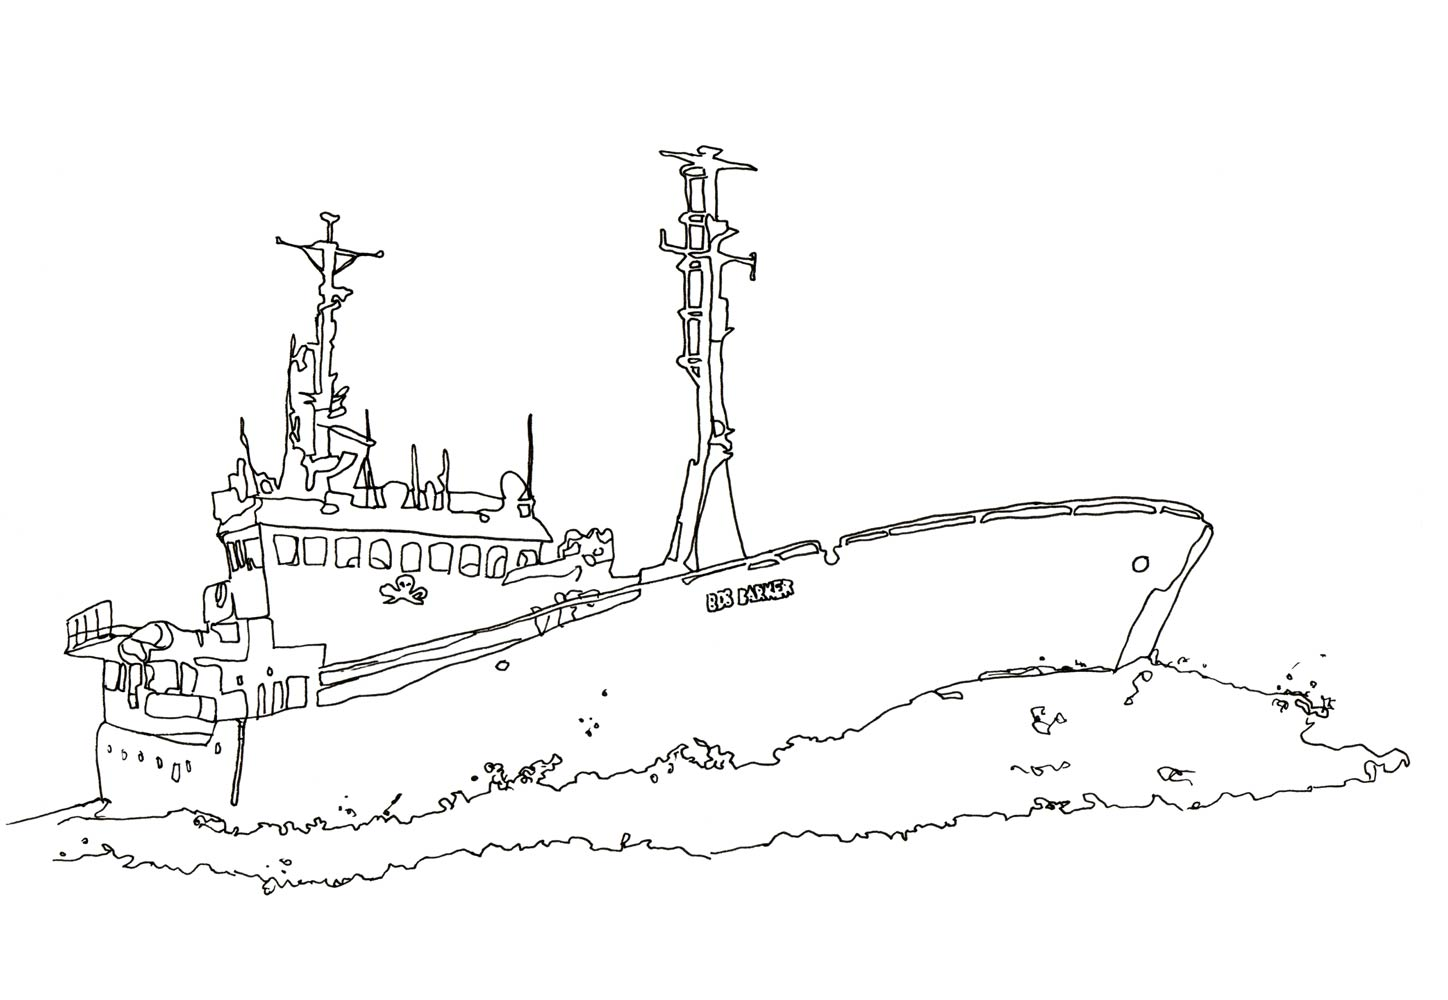 Line drawing of the Sea Shepherd ship Bob Barker by Anastasia Parmson